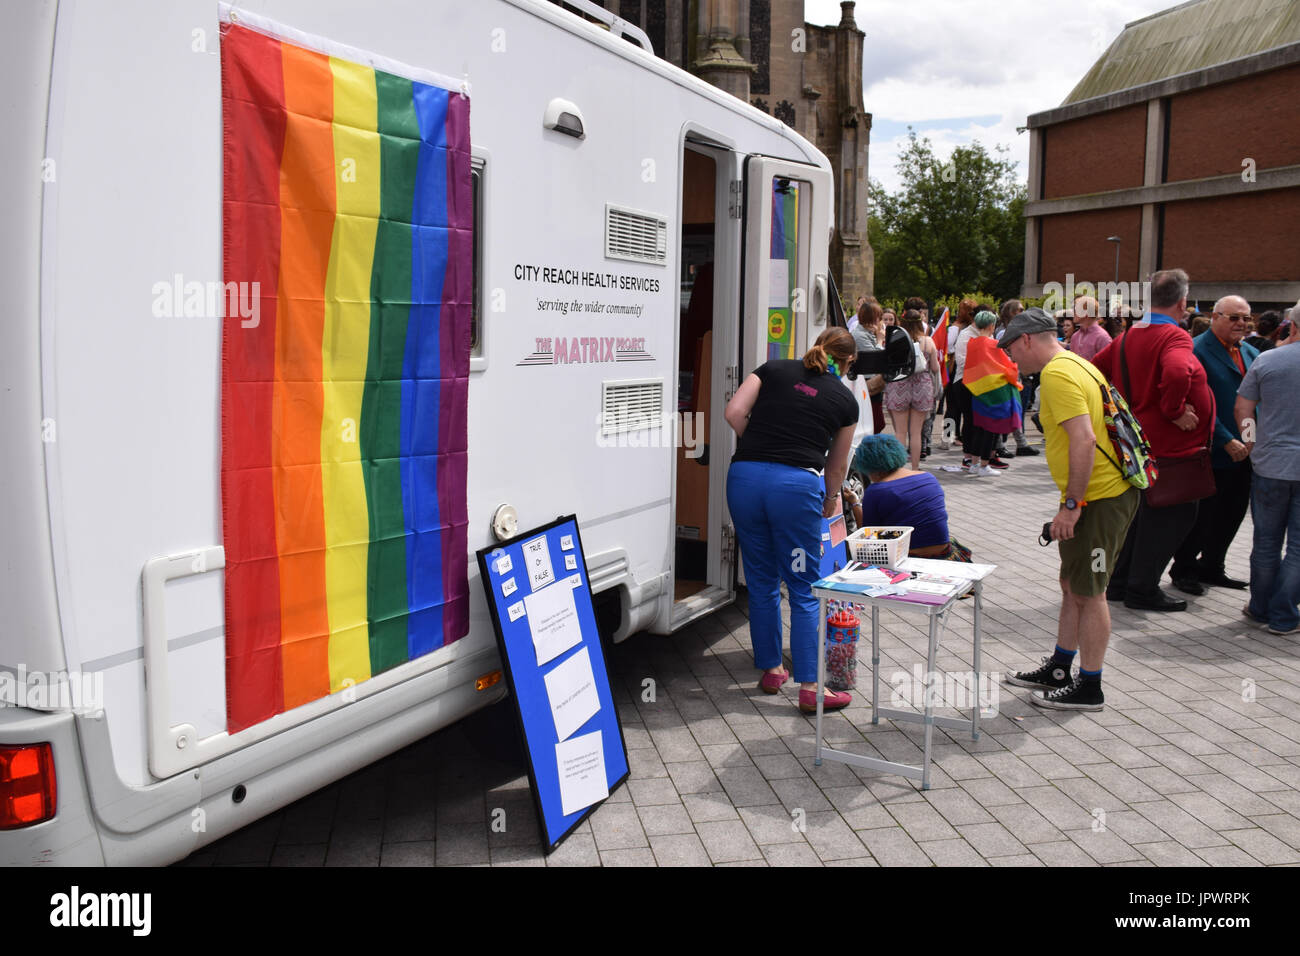 City Reach Health Services at Pride 2017, Norwich UK, 29 July 2017 - Stock Image